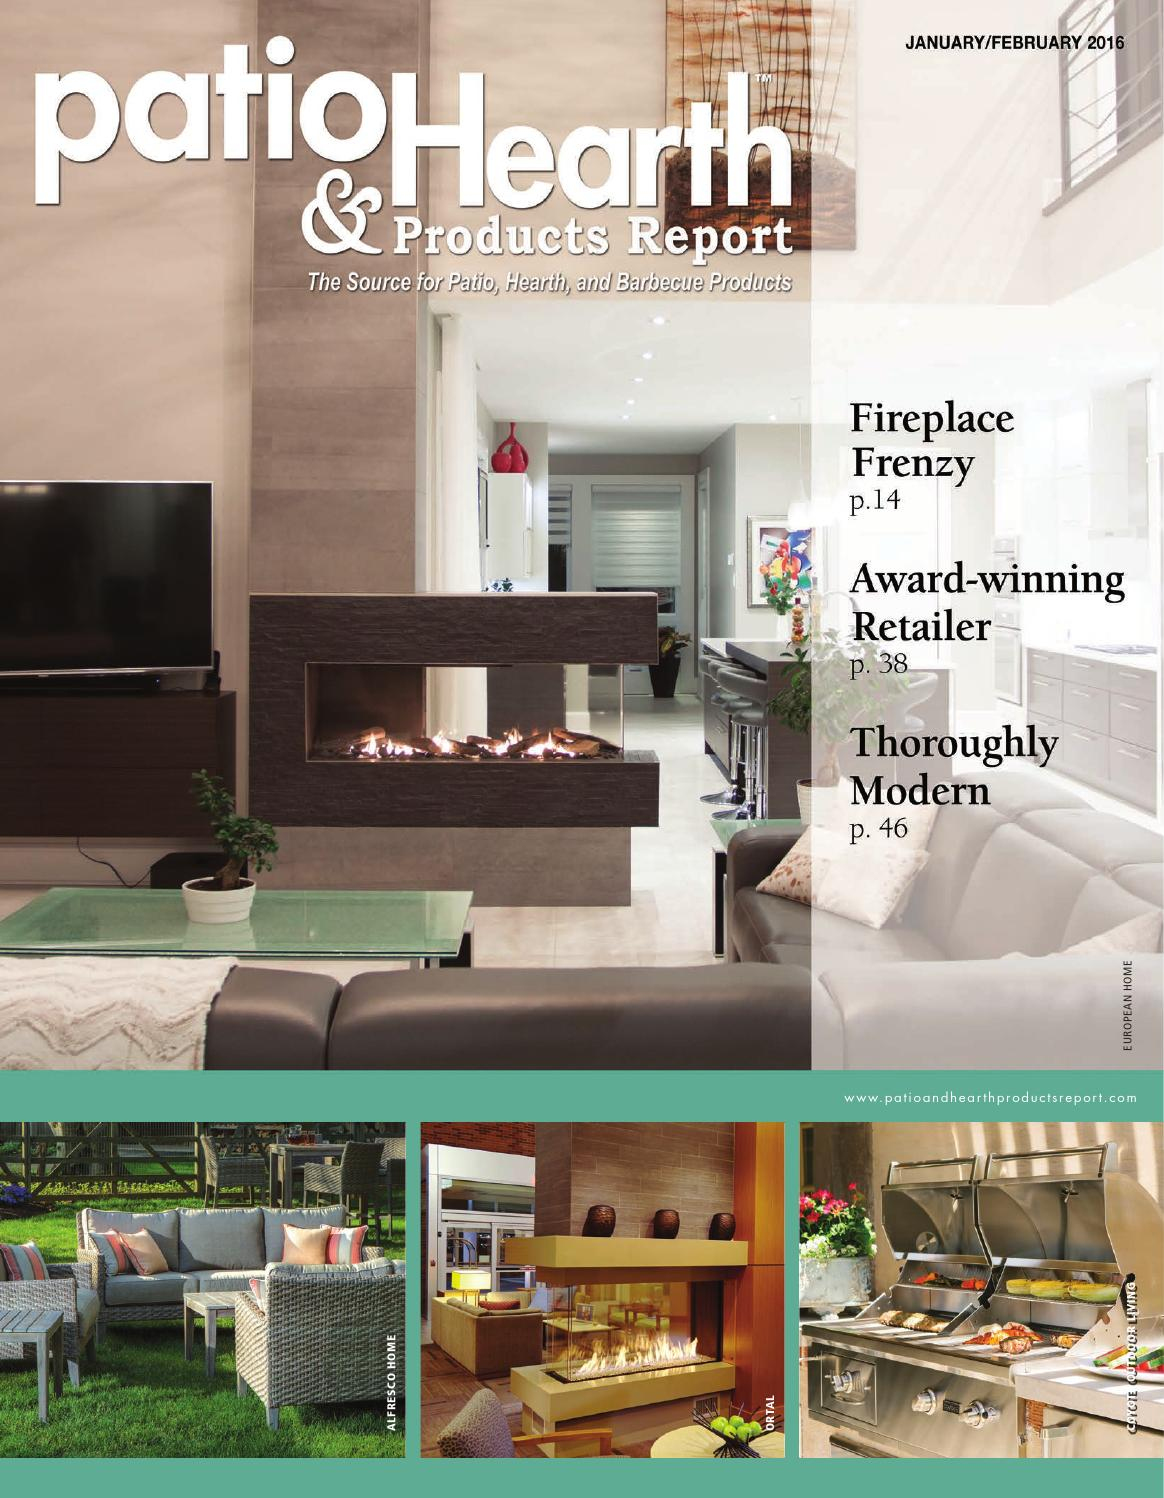 High Quality Patio U0026 Hearth Product Report January/February 2016 By Peninsula Media    Issuu